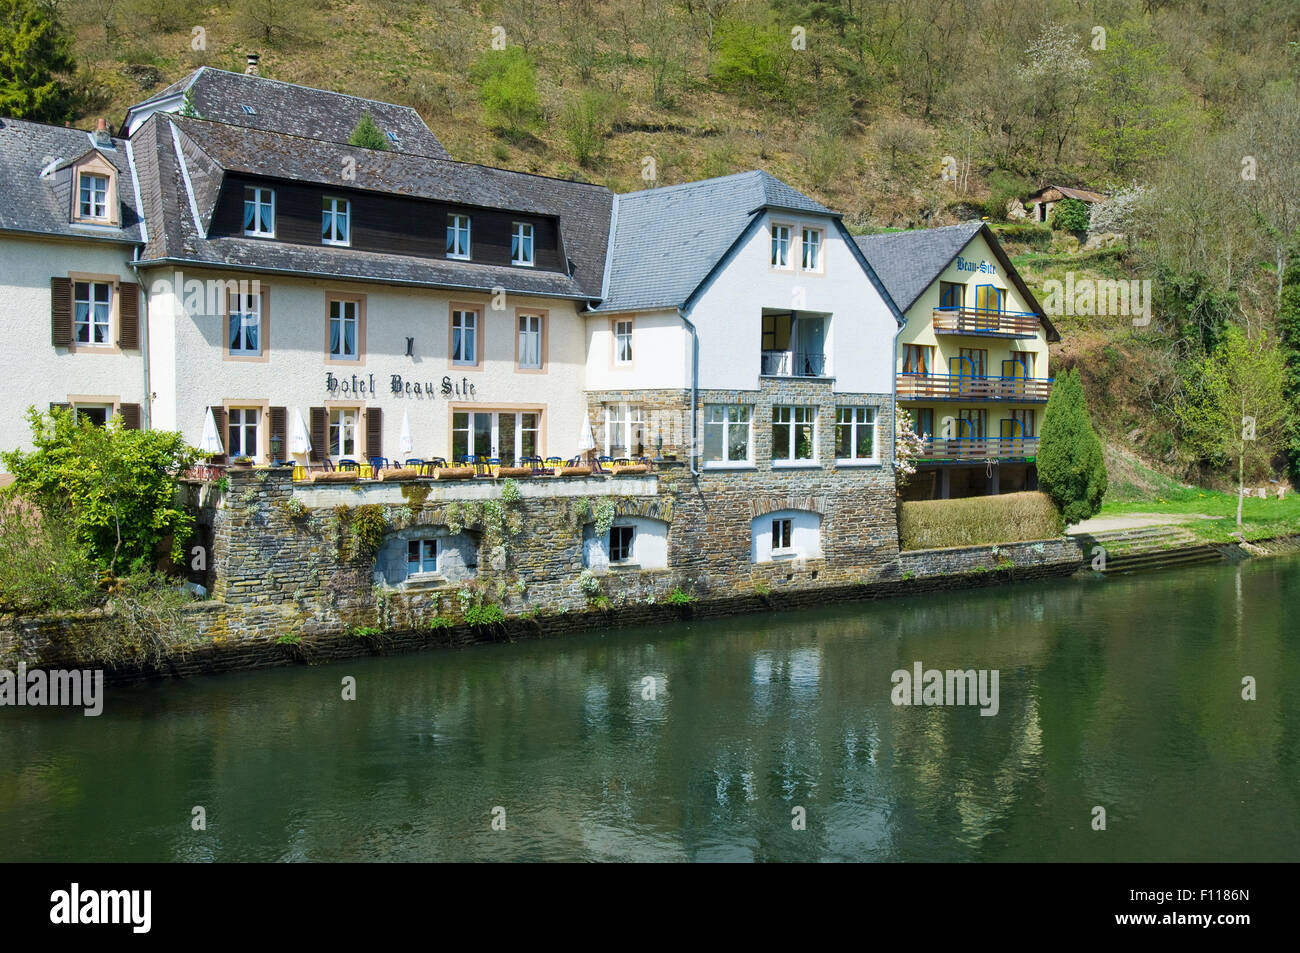 Hotel Beau Site on the banks of the River Sure  in the village of Esch-sur-Sure in The Ardennes in Luxembourg - Stock Image